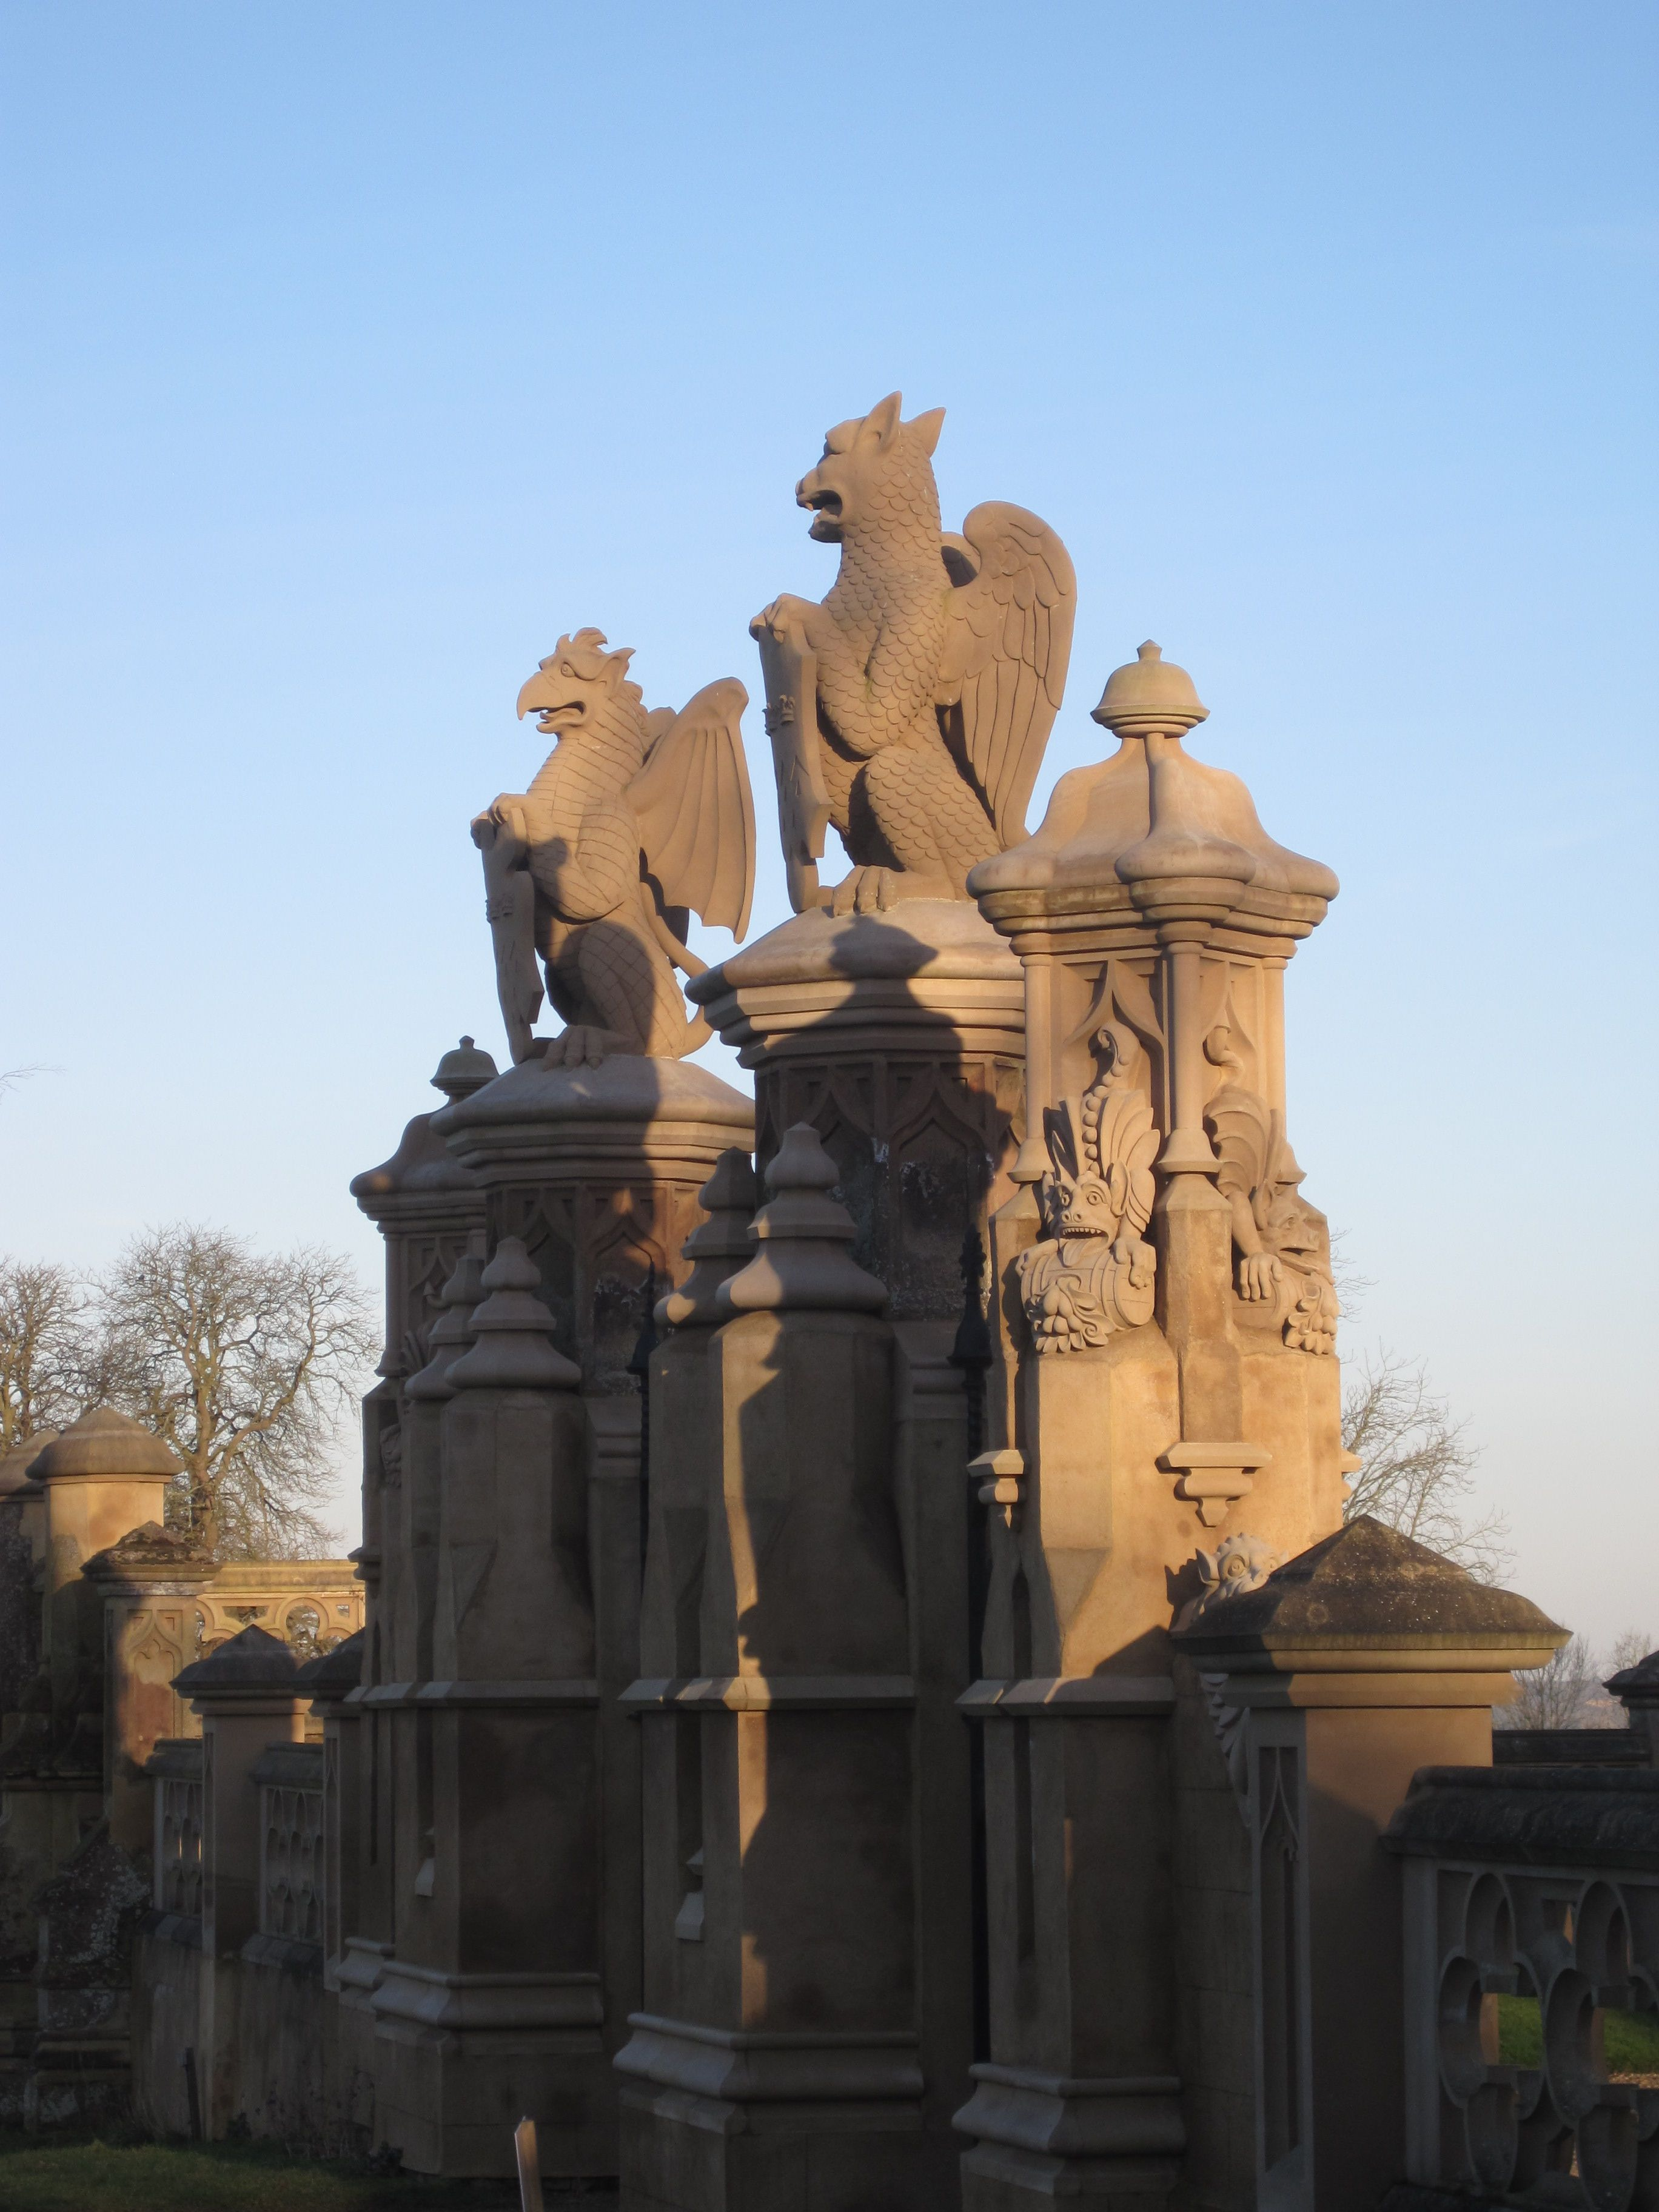 Gryphons on the Courtyard gates